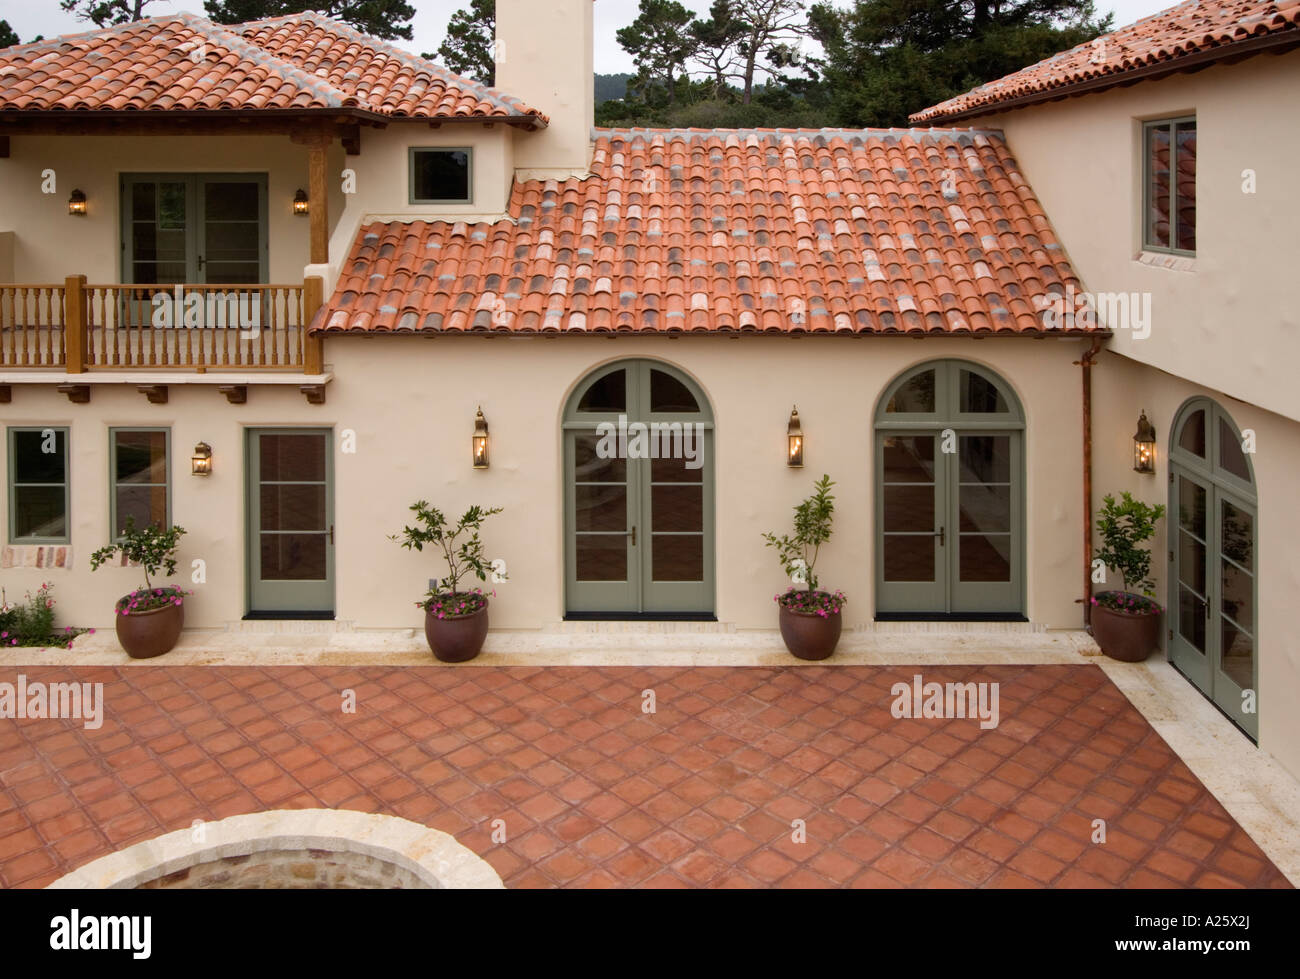 Stucco roof dark grey stucco exterior white trim nice for Spanish style roof tiles